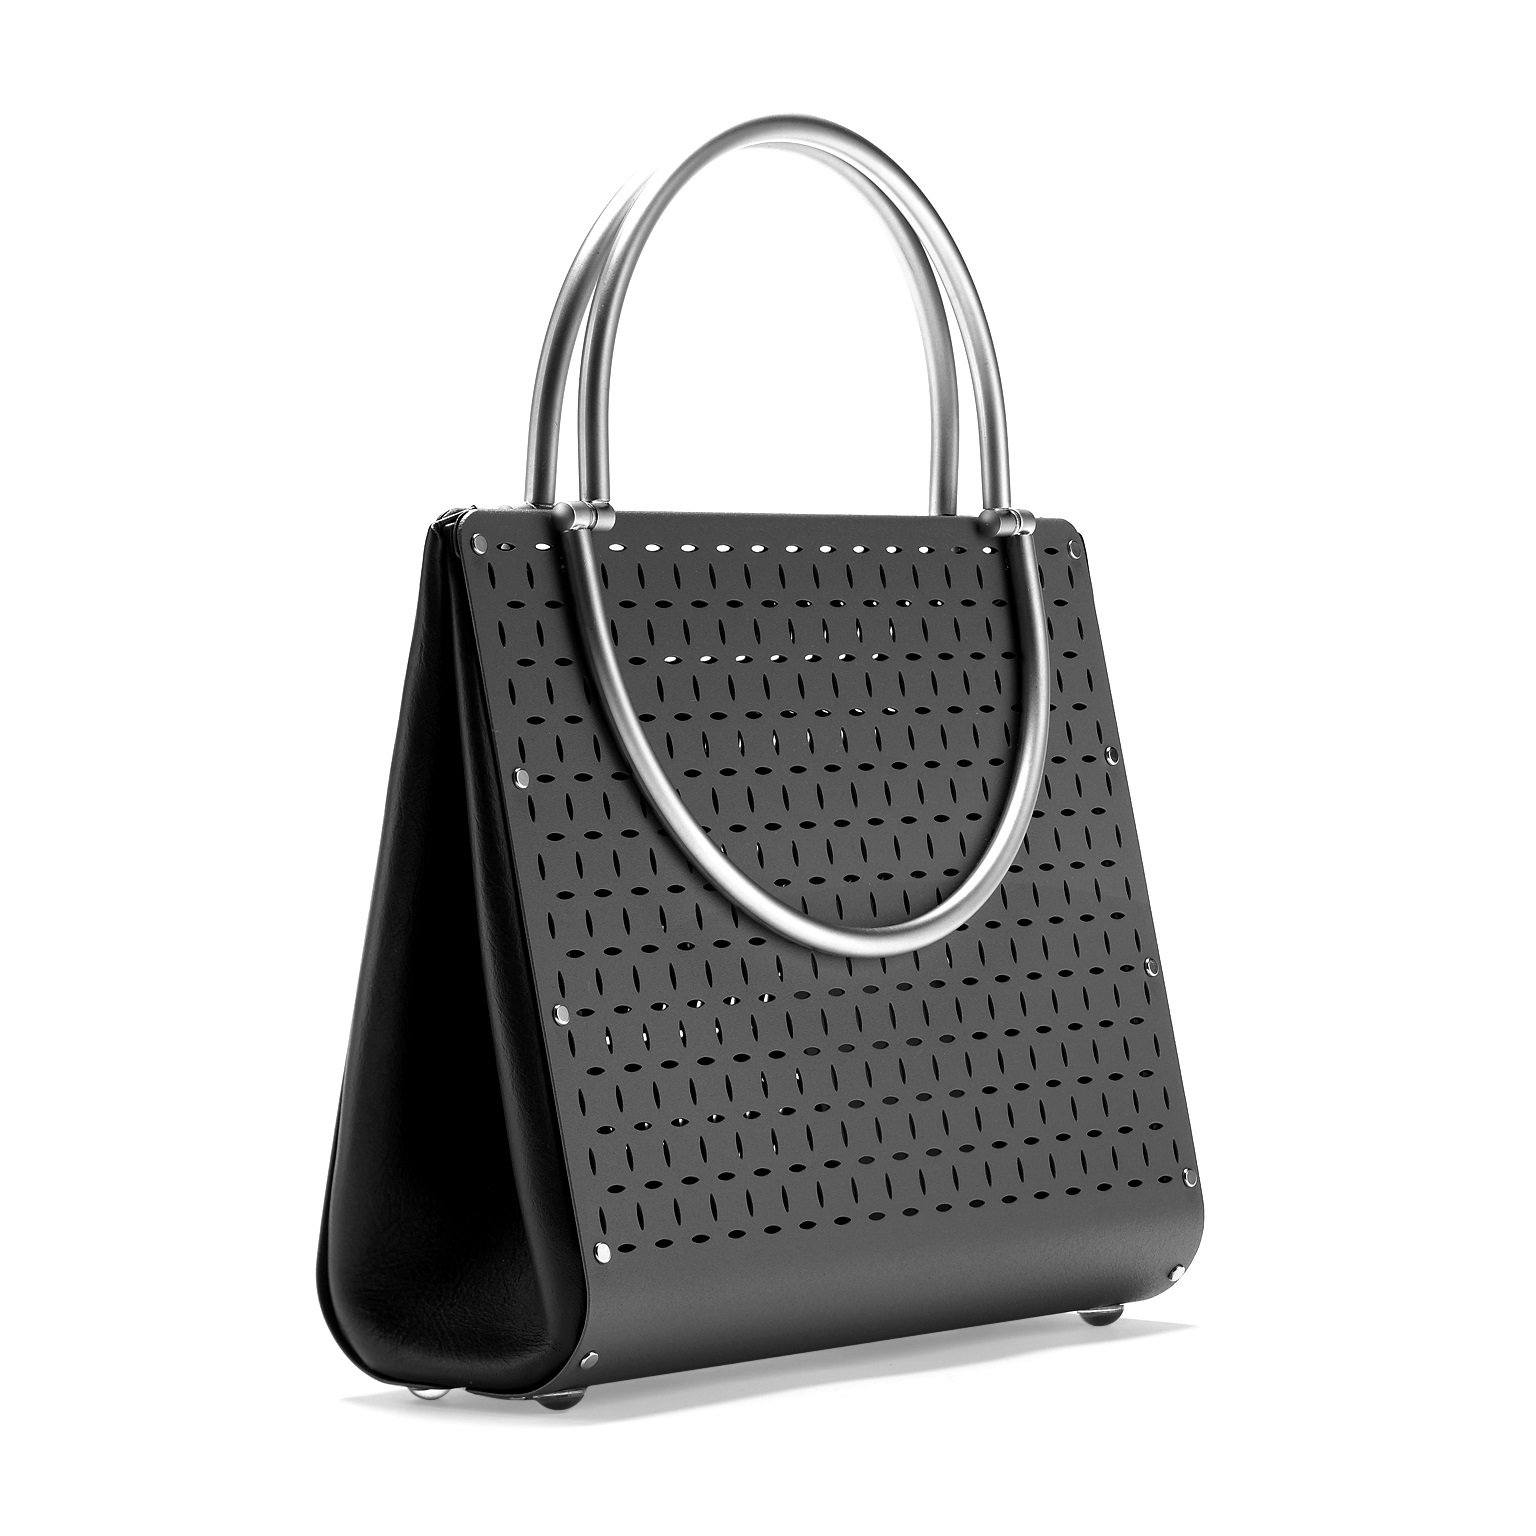 b02fbfe4f8f6 Wendy Stevens Black Stainless Steel Leather Washington Bag - Szor  Collections